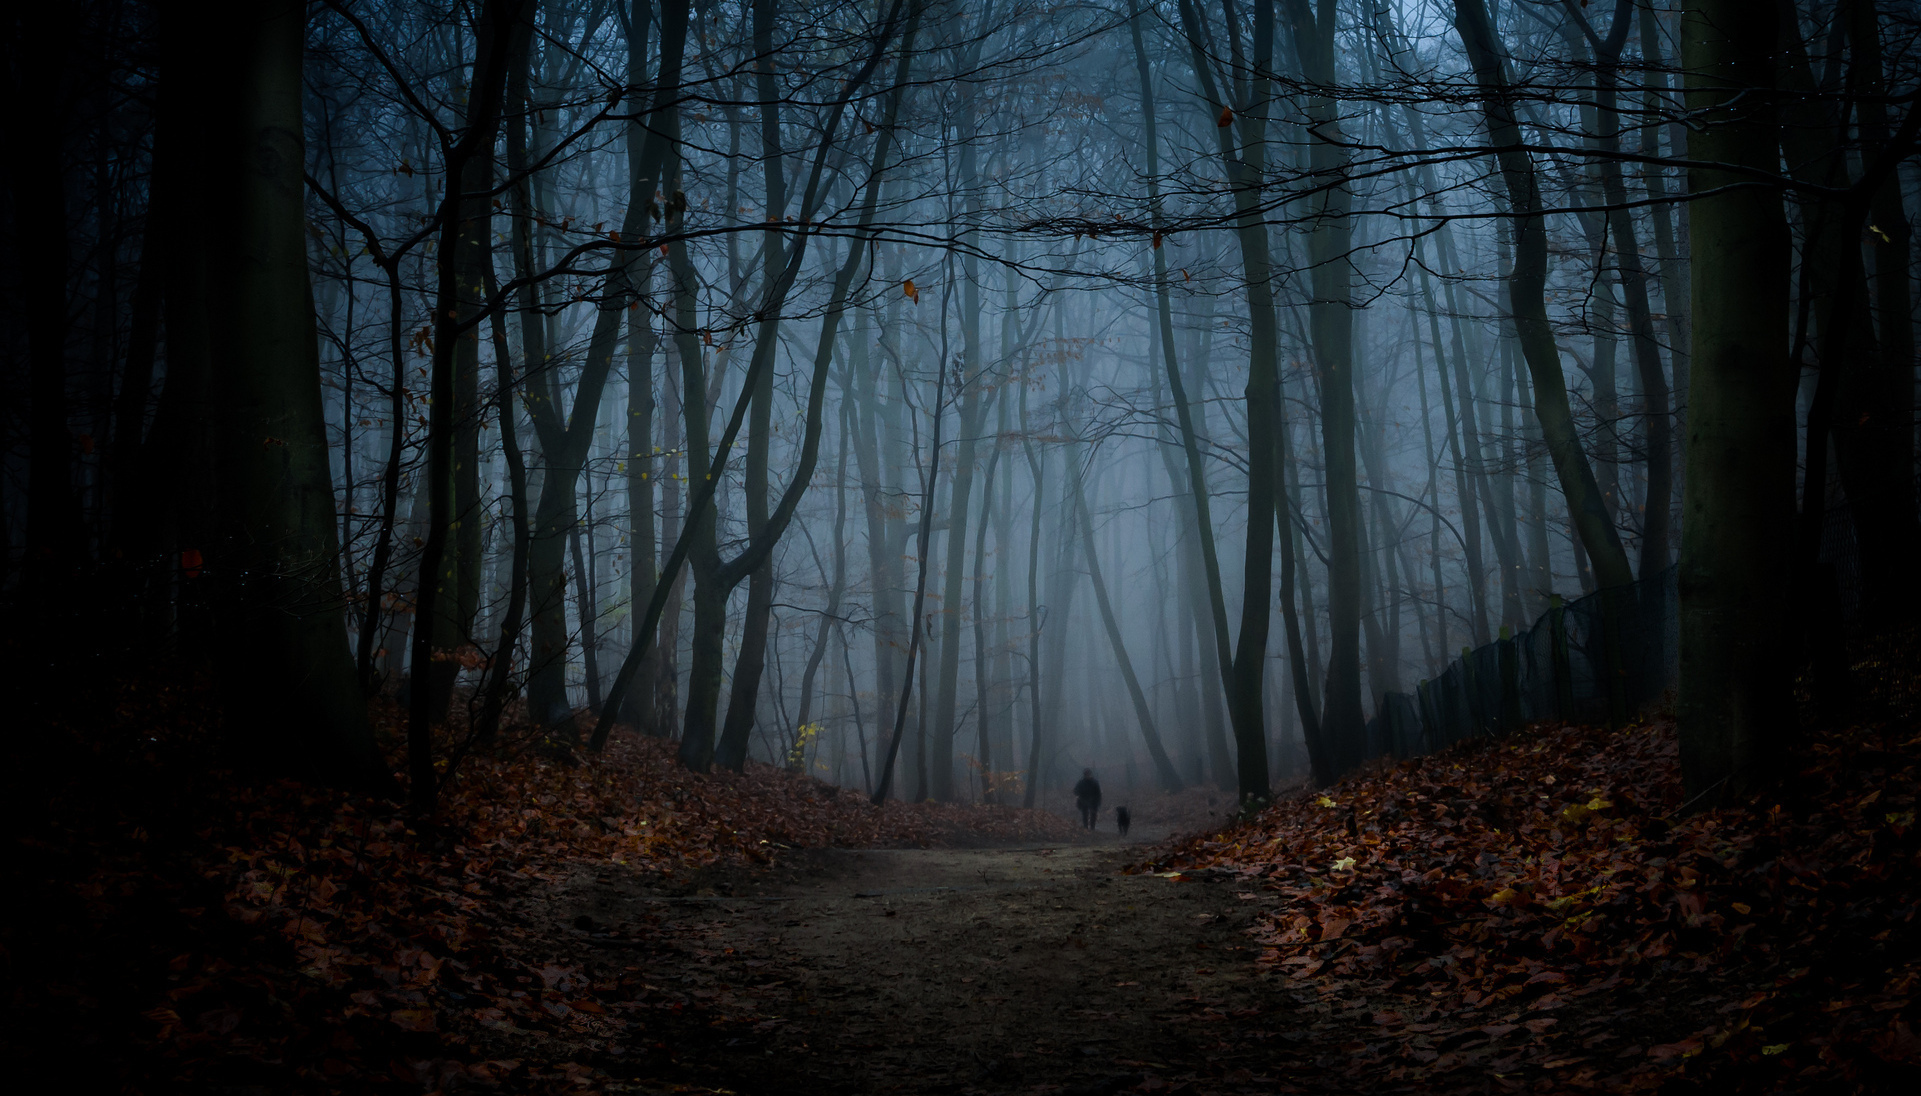 night forest road hd